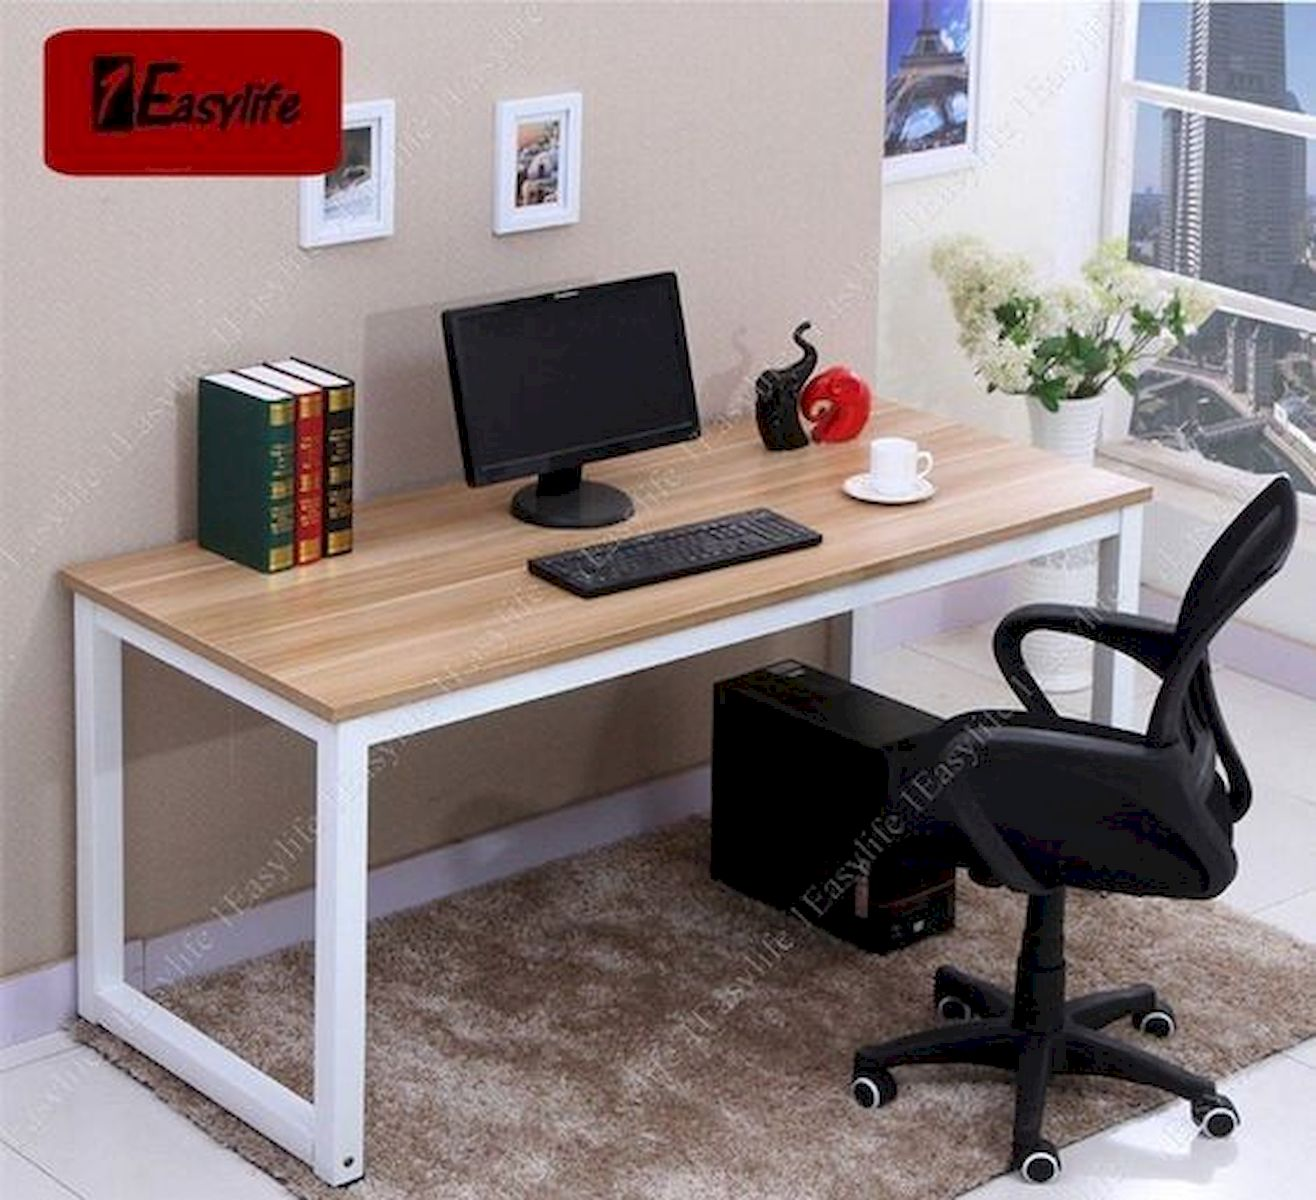 54 Wonderful DIY Computer Desk Design Ideas and Decor (50)